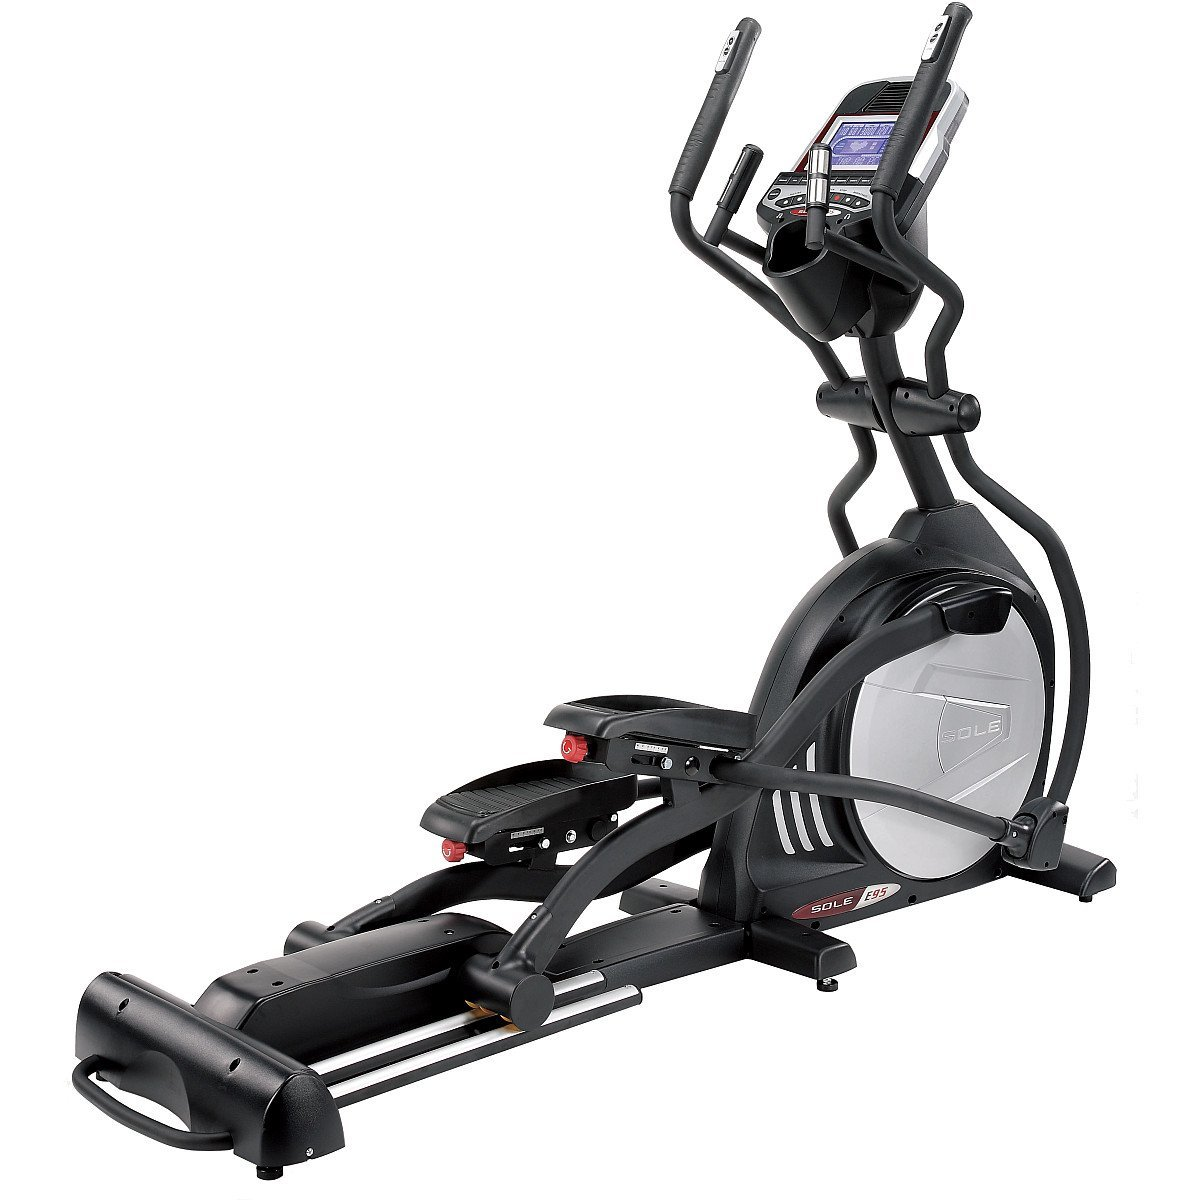 Image Result For Good Treadmill For Home Gym